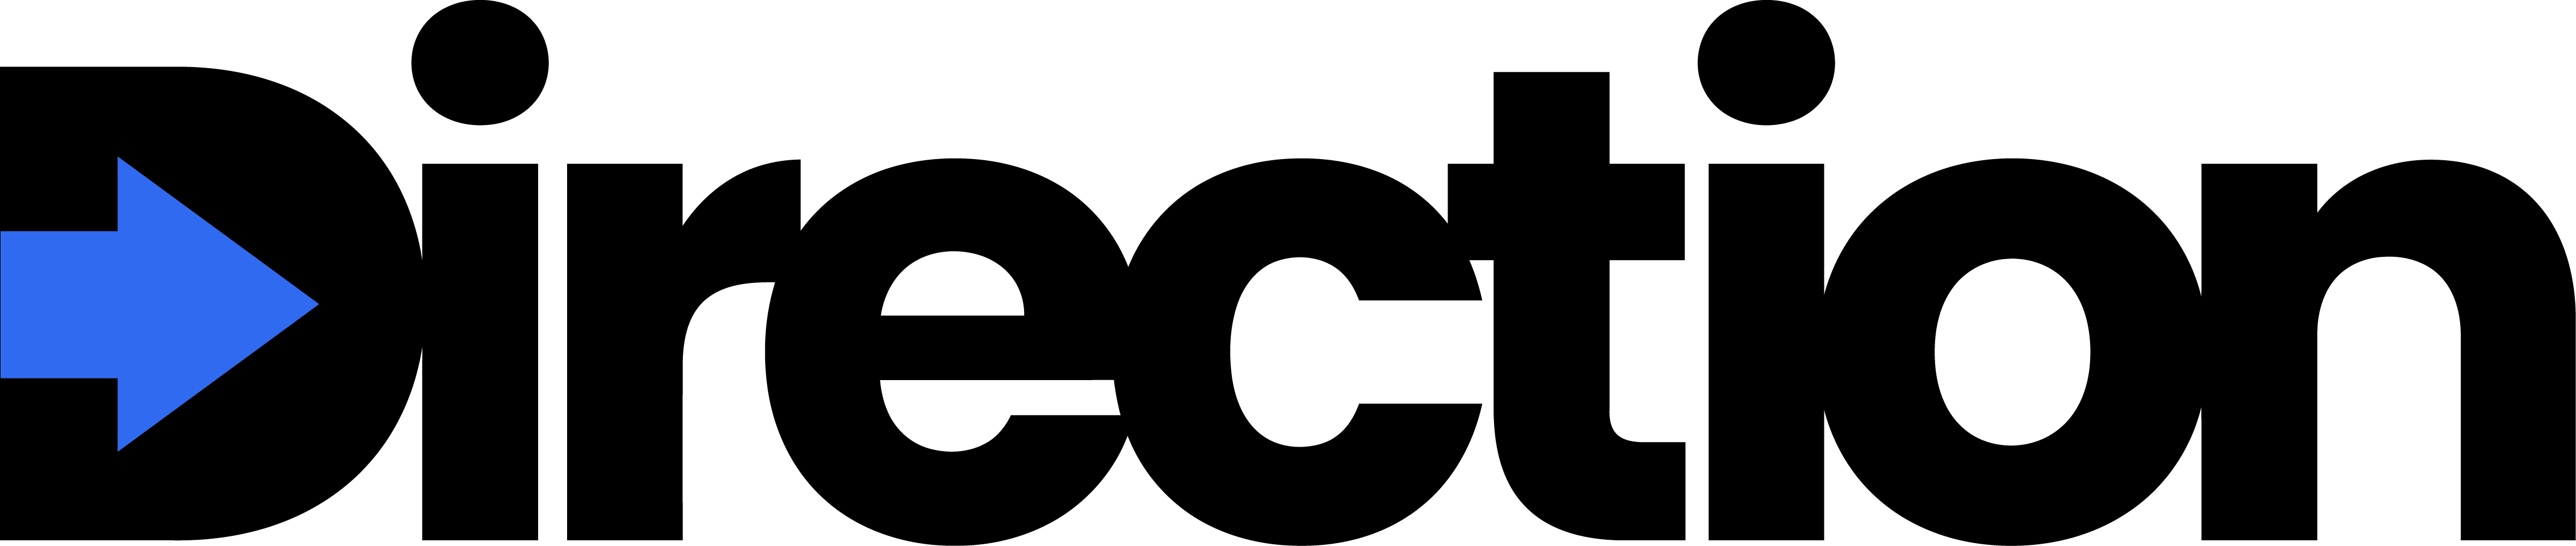 Direction-logo-black